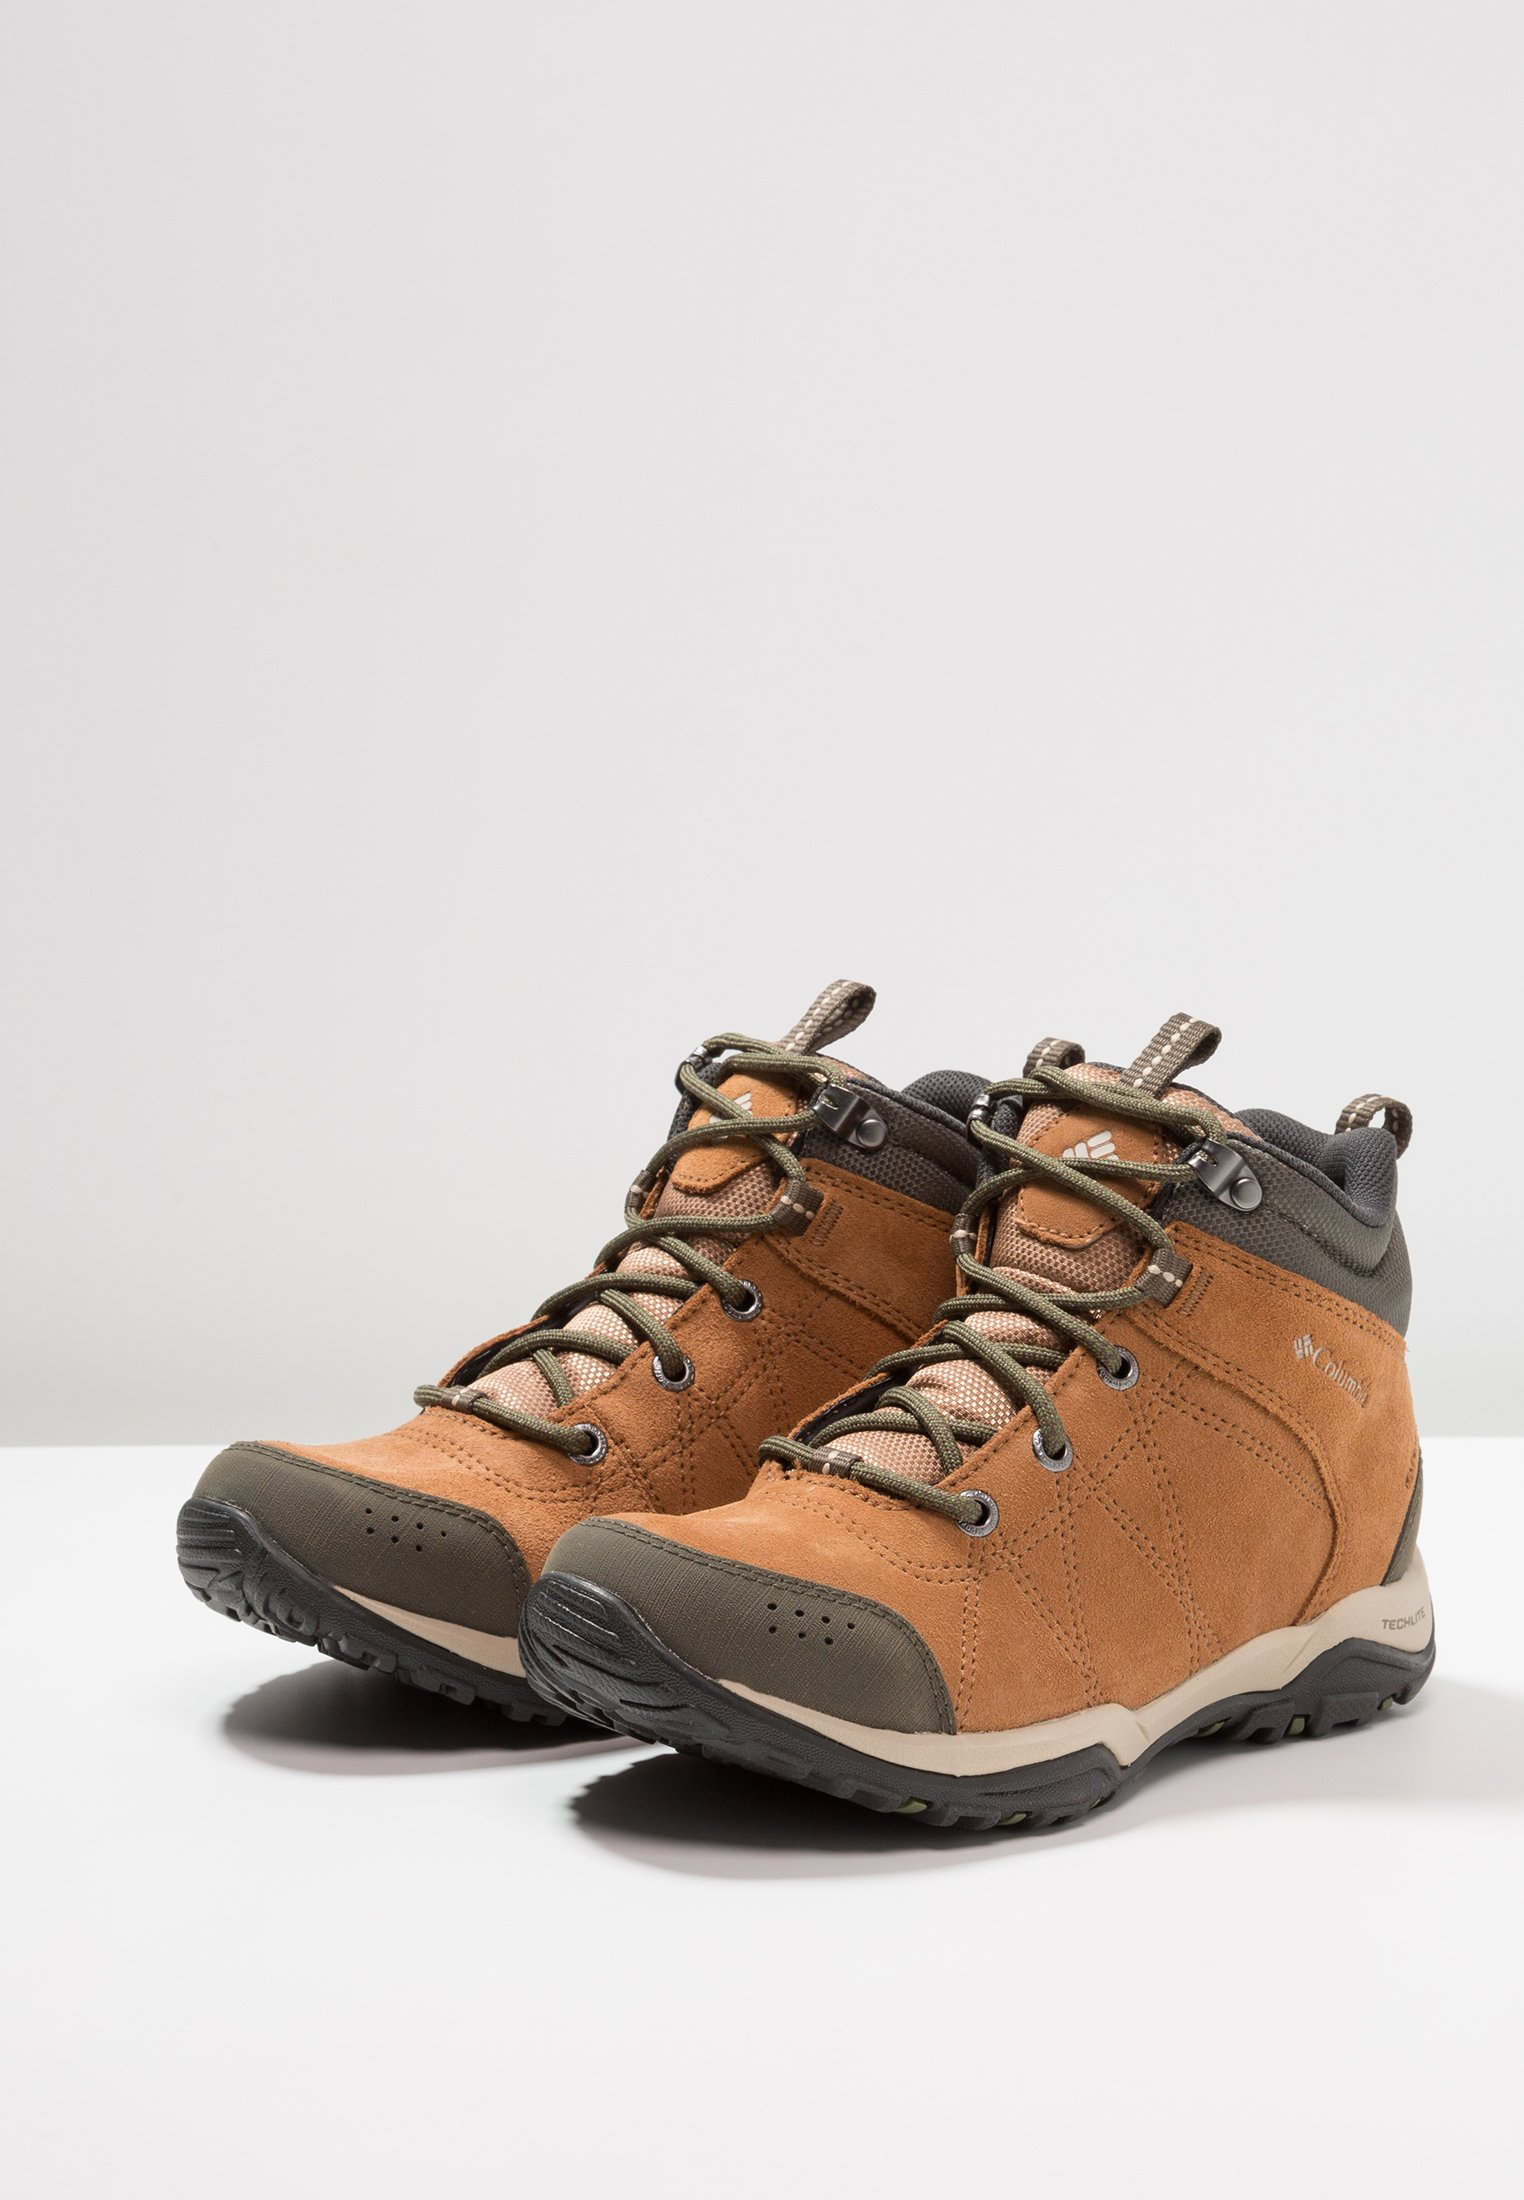 Venture Columbia Fire WaterproofChaussures Marche Elk De Fossil Mid ancient H2WIDE9